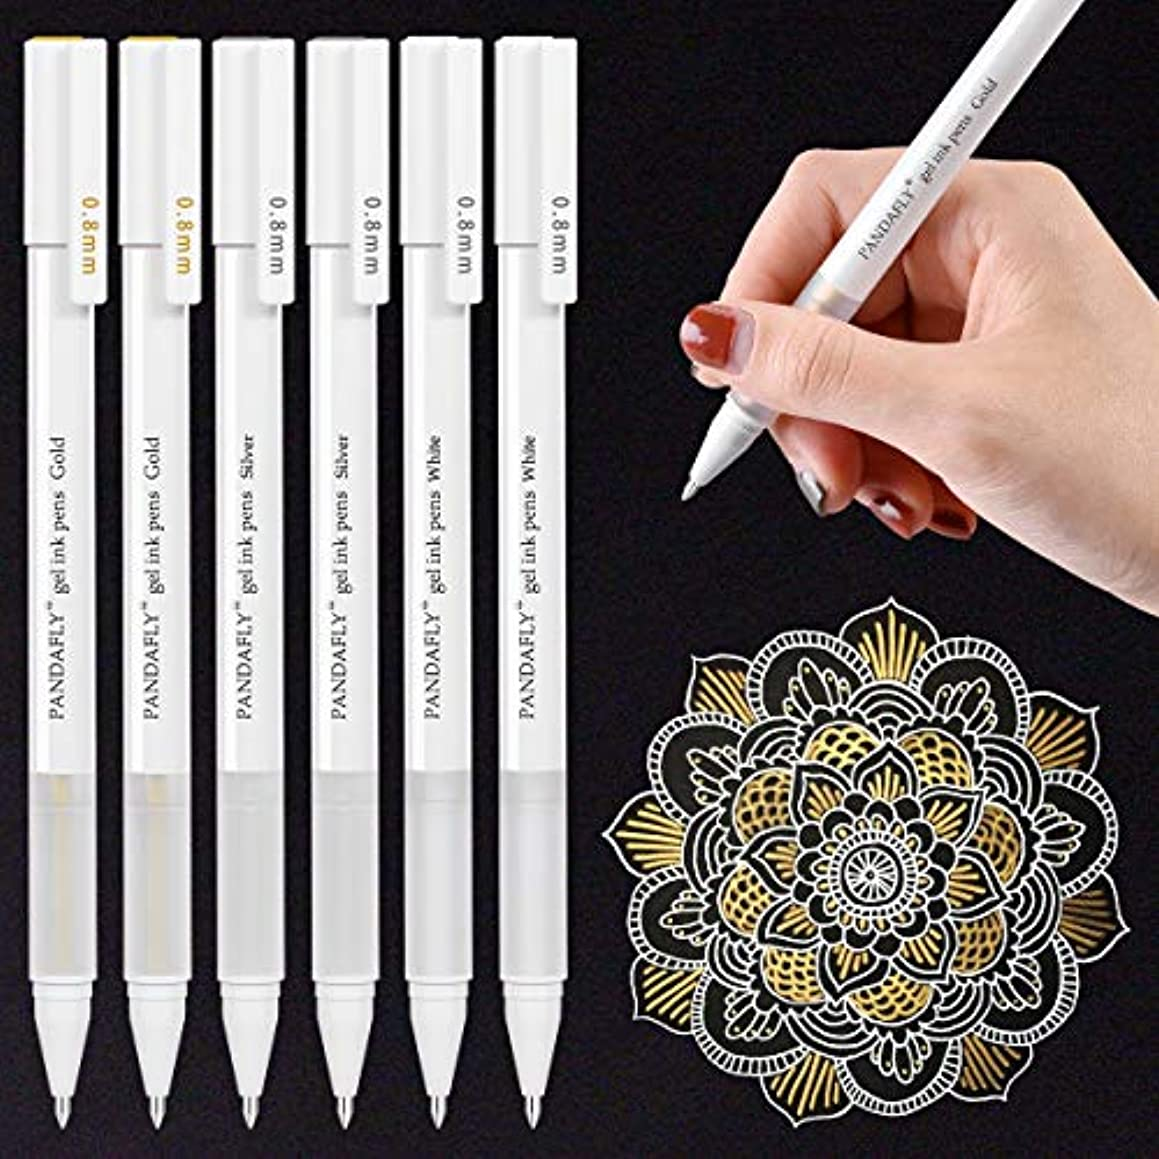 White Gold Silver Gel Pens, PANDAFLY 3 Colors Gel Ink Pen Set, Archival Ink Fine Tip Sketching Pens for Illustration Design, Art Drawing, Black Paper Drawing, Adult Coloring Book, Pack of 6